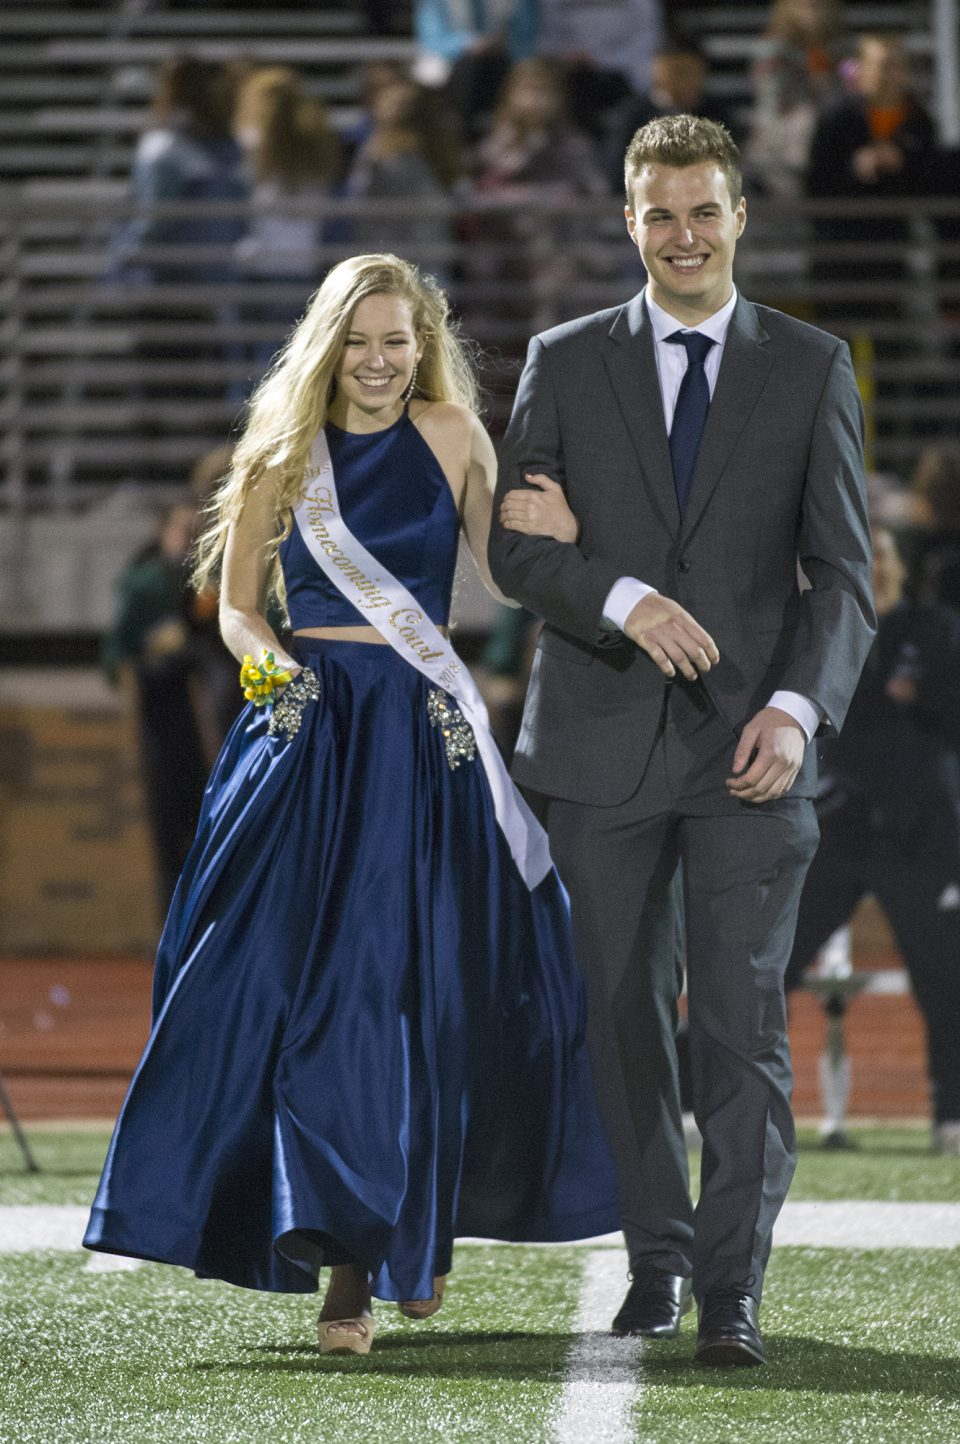 Homecoming queen candidate Aubrey Sanders and escort Matt Burns. Photo by Maya Bell.